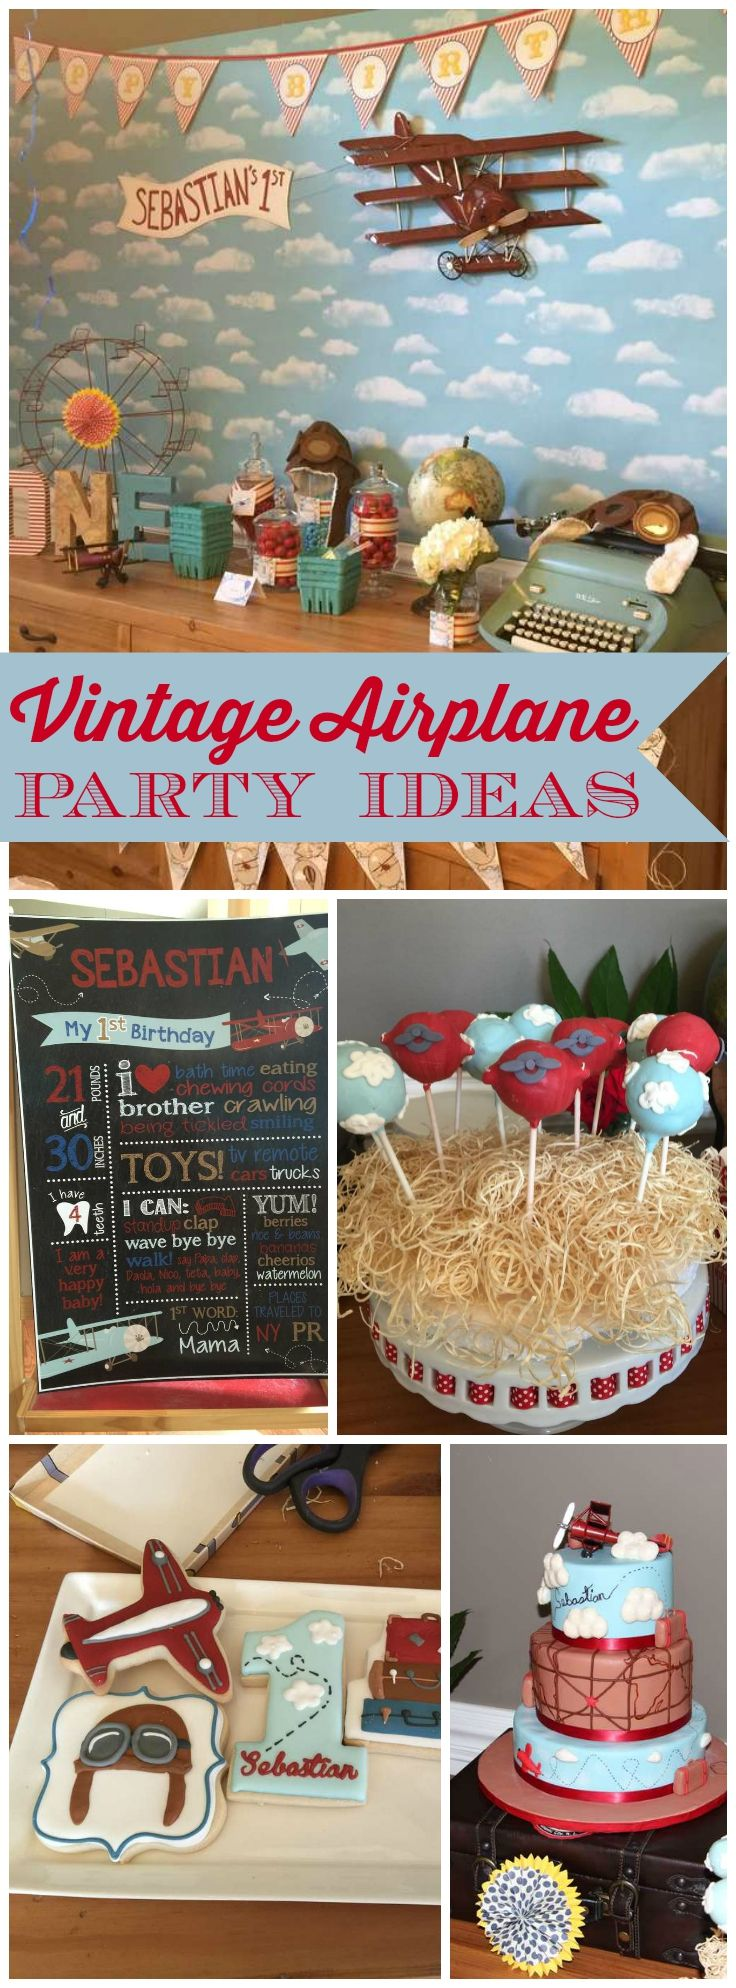 40 best vintage airplane party images on pinterest vintage